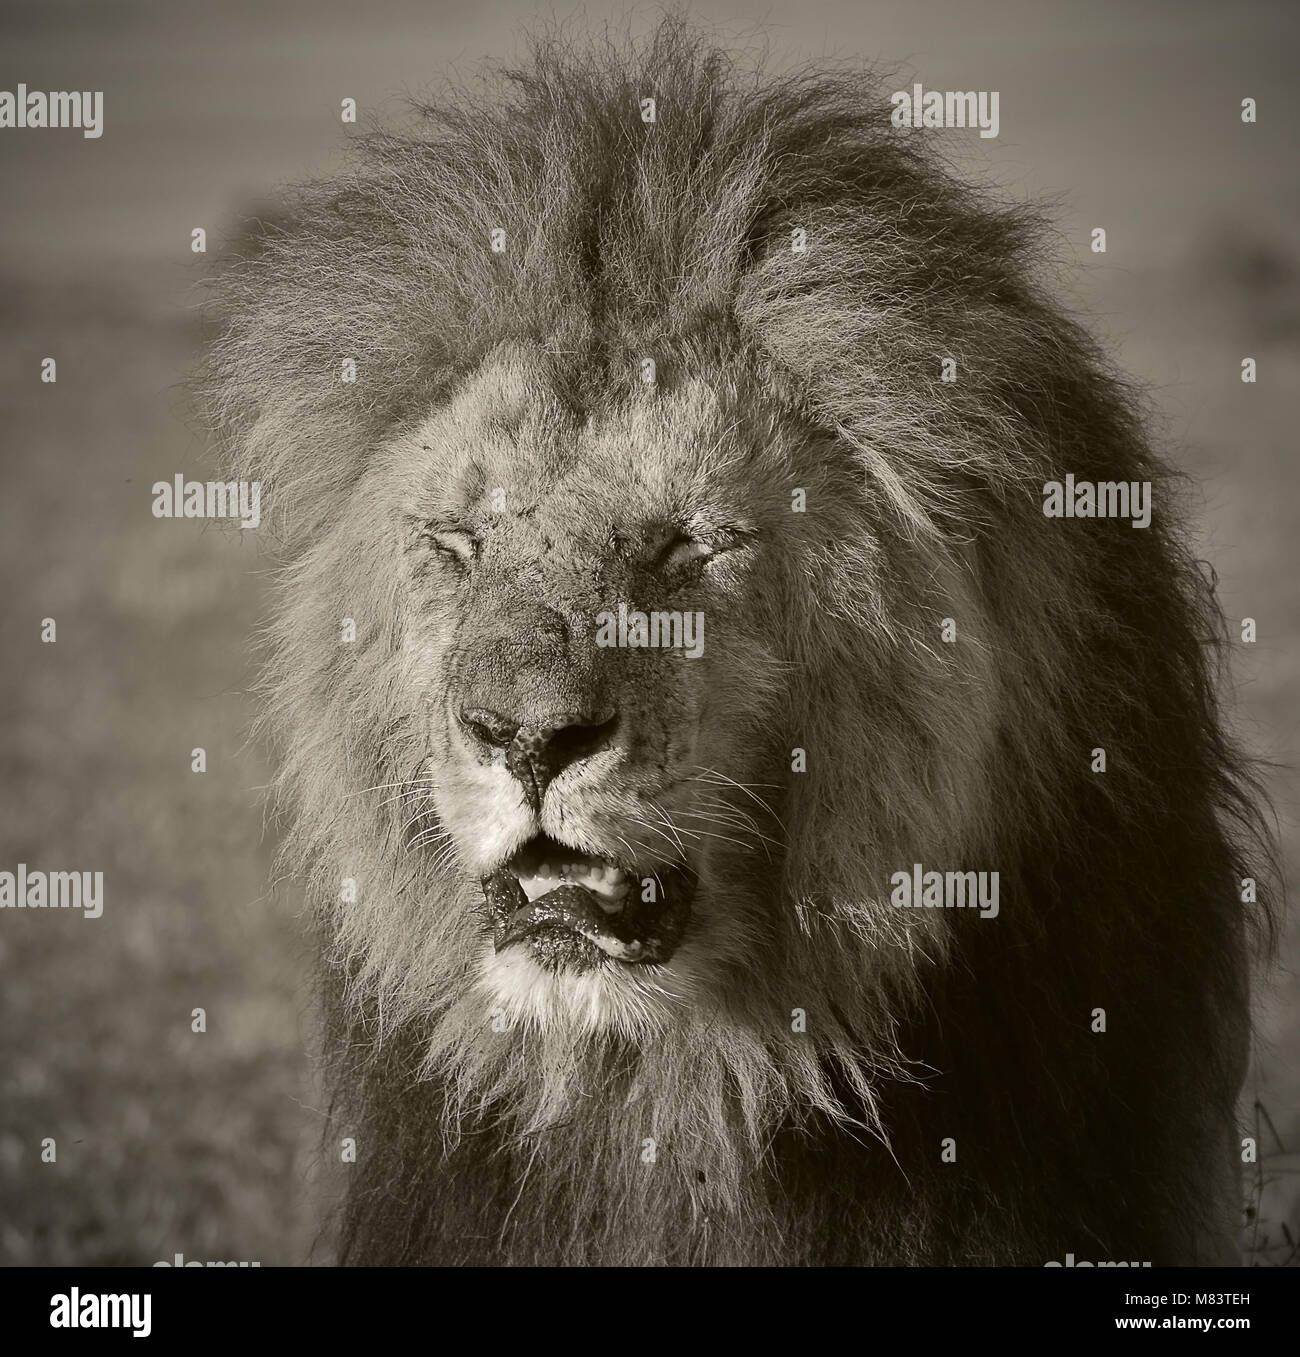 Morning light falling on to lion's face - Stock Image